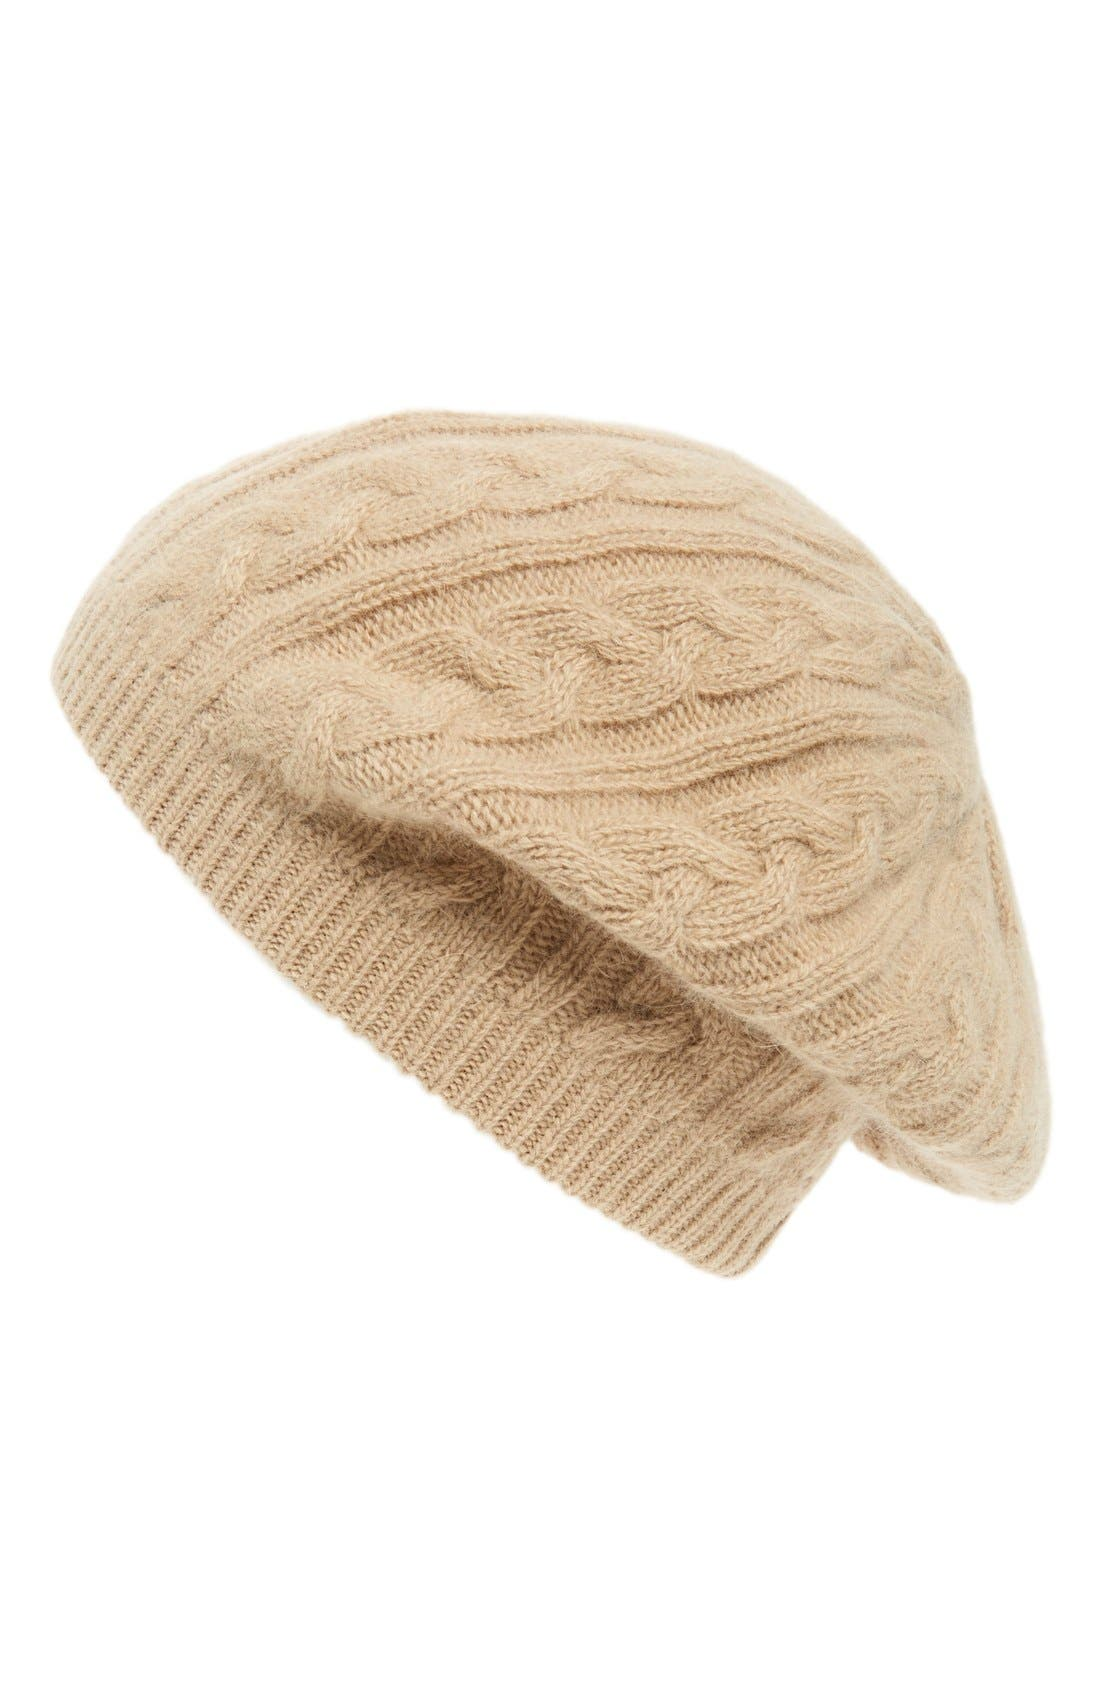 Alternate Image 1 Selected - Sole Society Cable Knit Beret